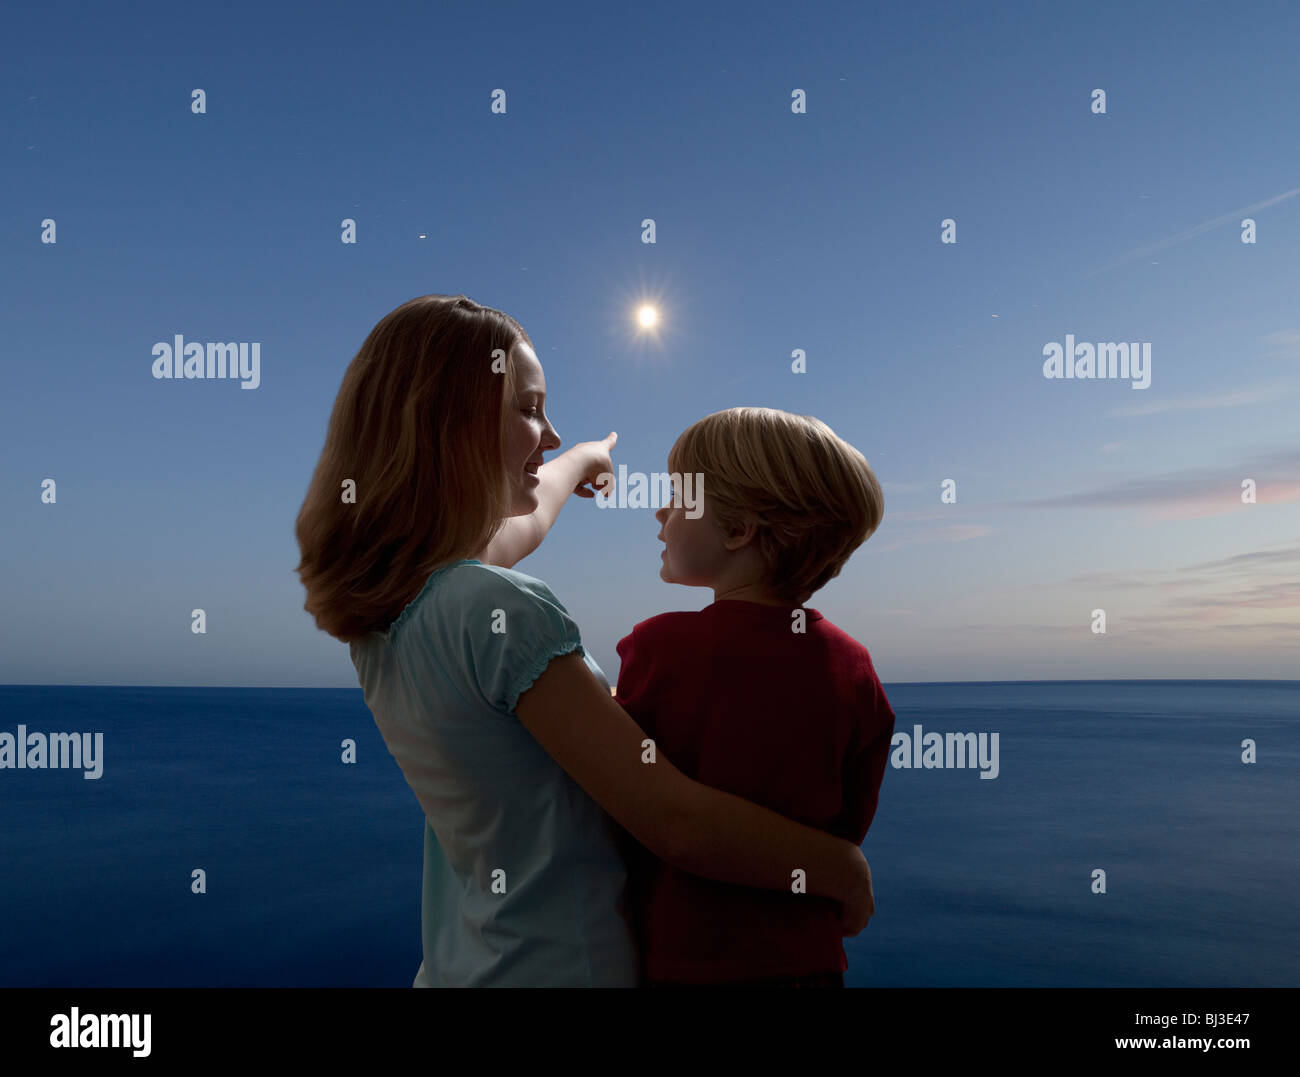 boy and girl watching the moon rising - Stock Image